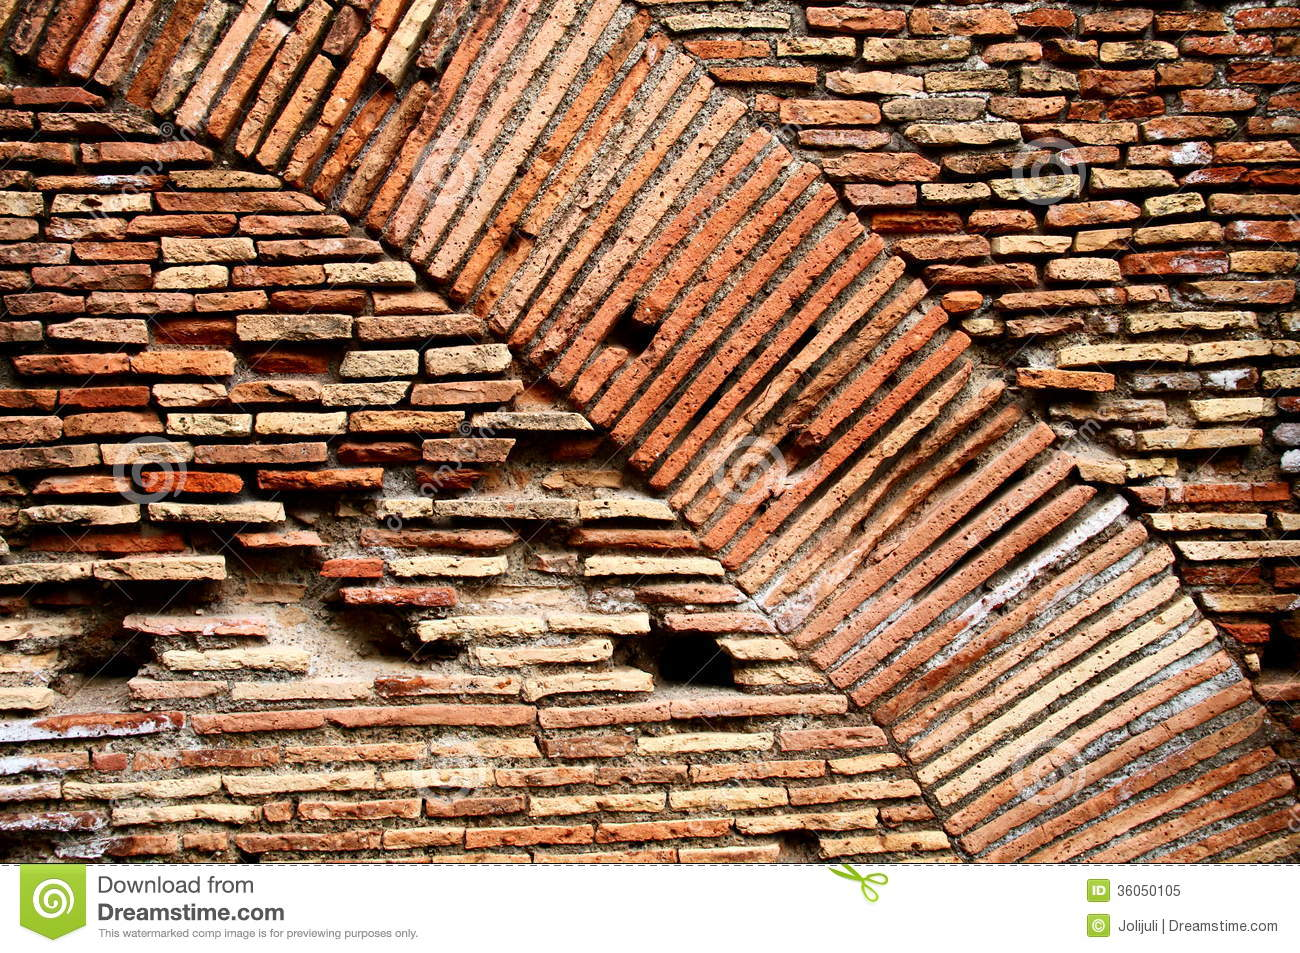 Ancient wall texture royalty free stock photo image for Mr arredamenti ostia antica